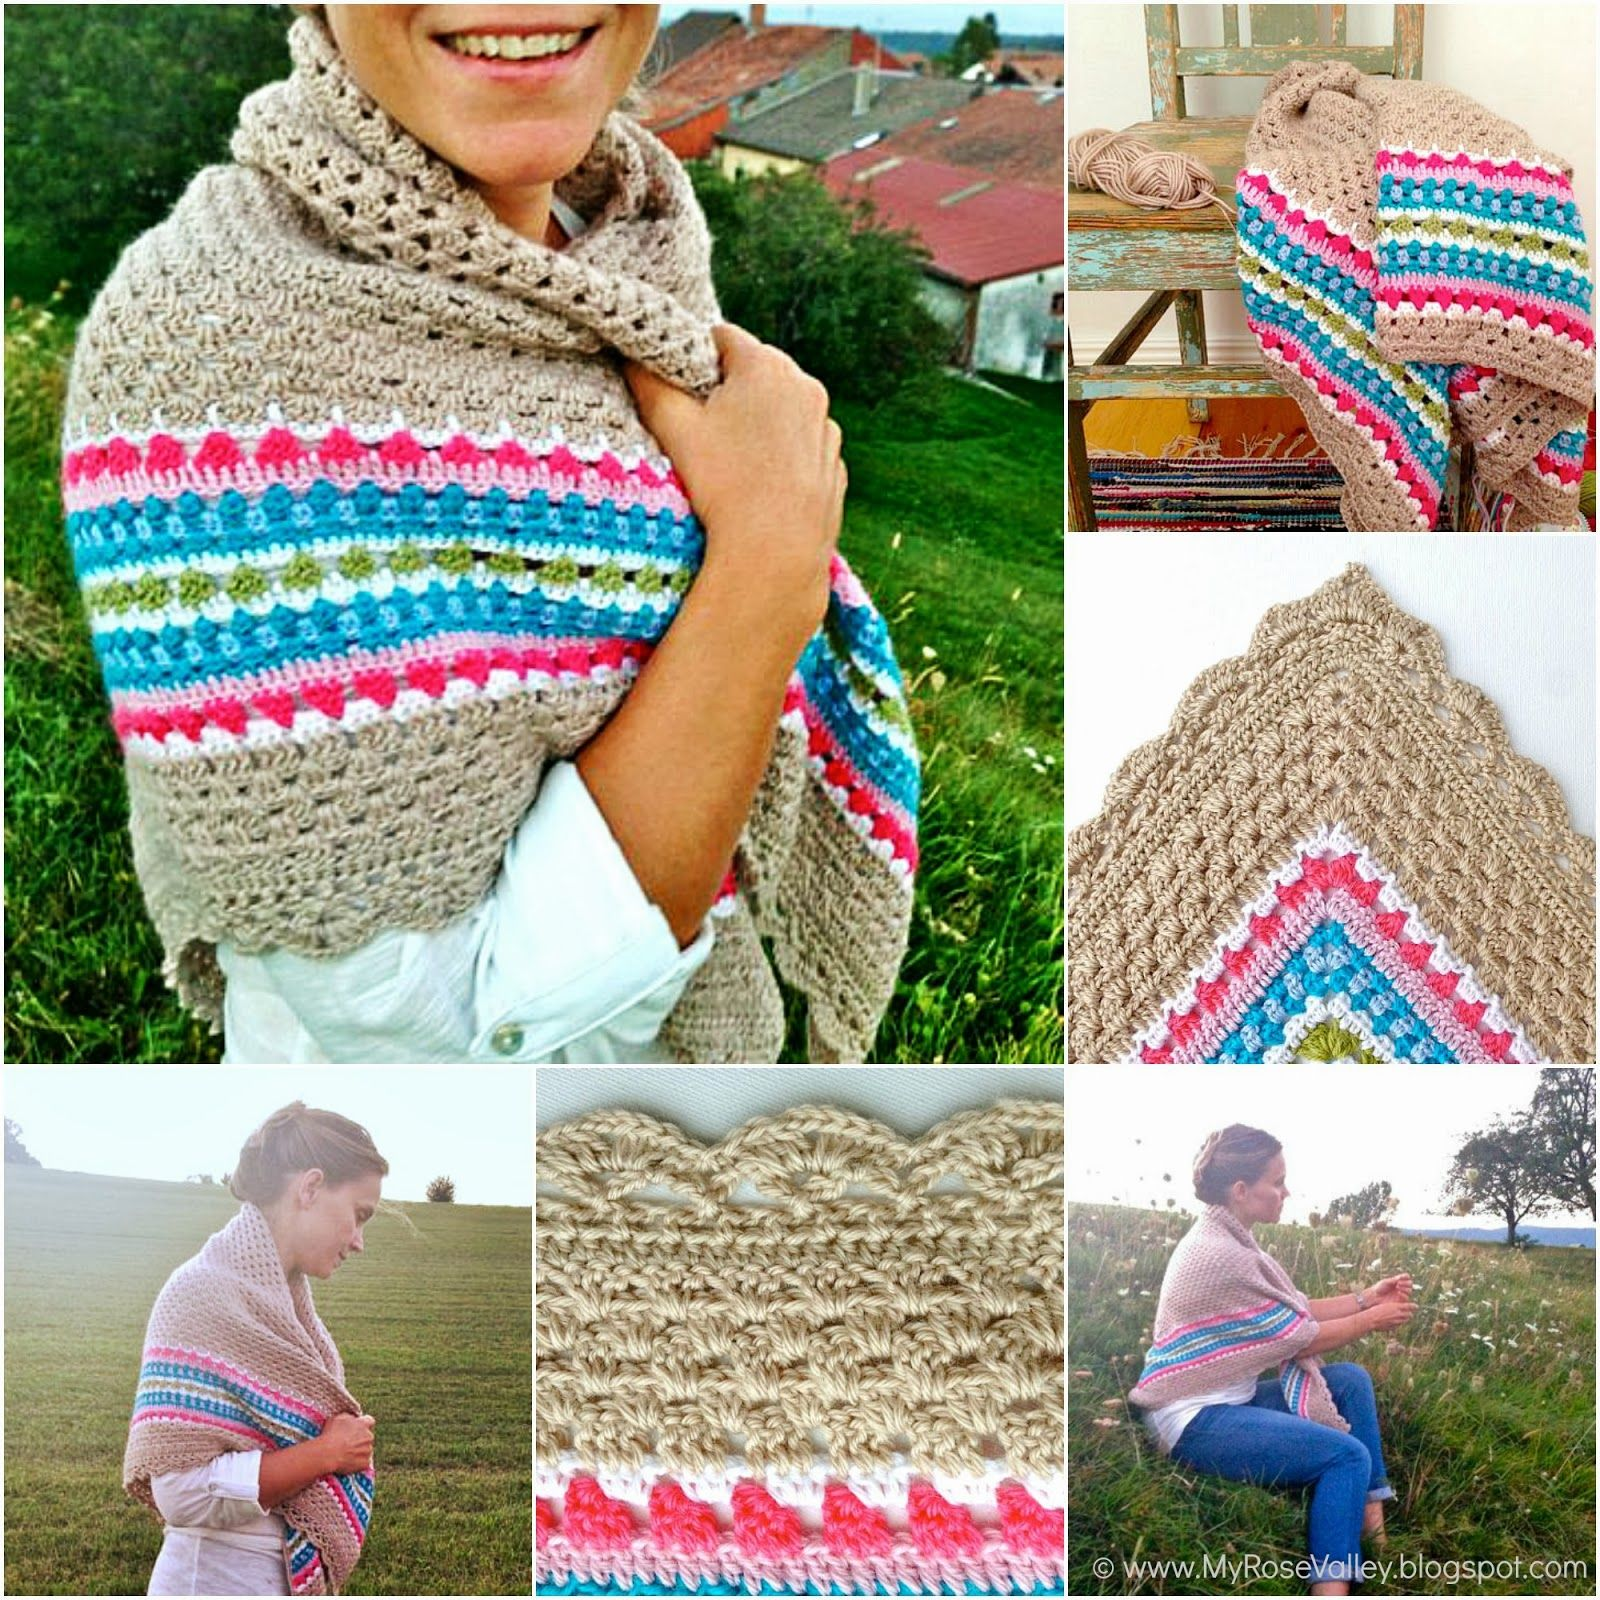 My Rose Valley: The Nordic Shawl Pattern | Crochet Rulez | Pinterest ...